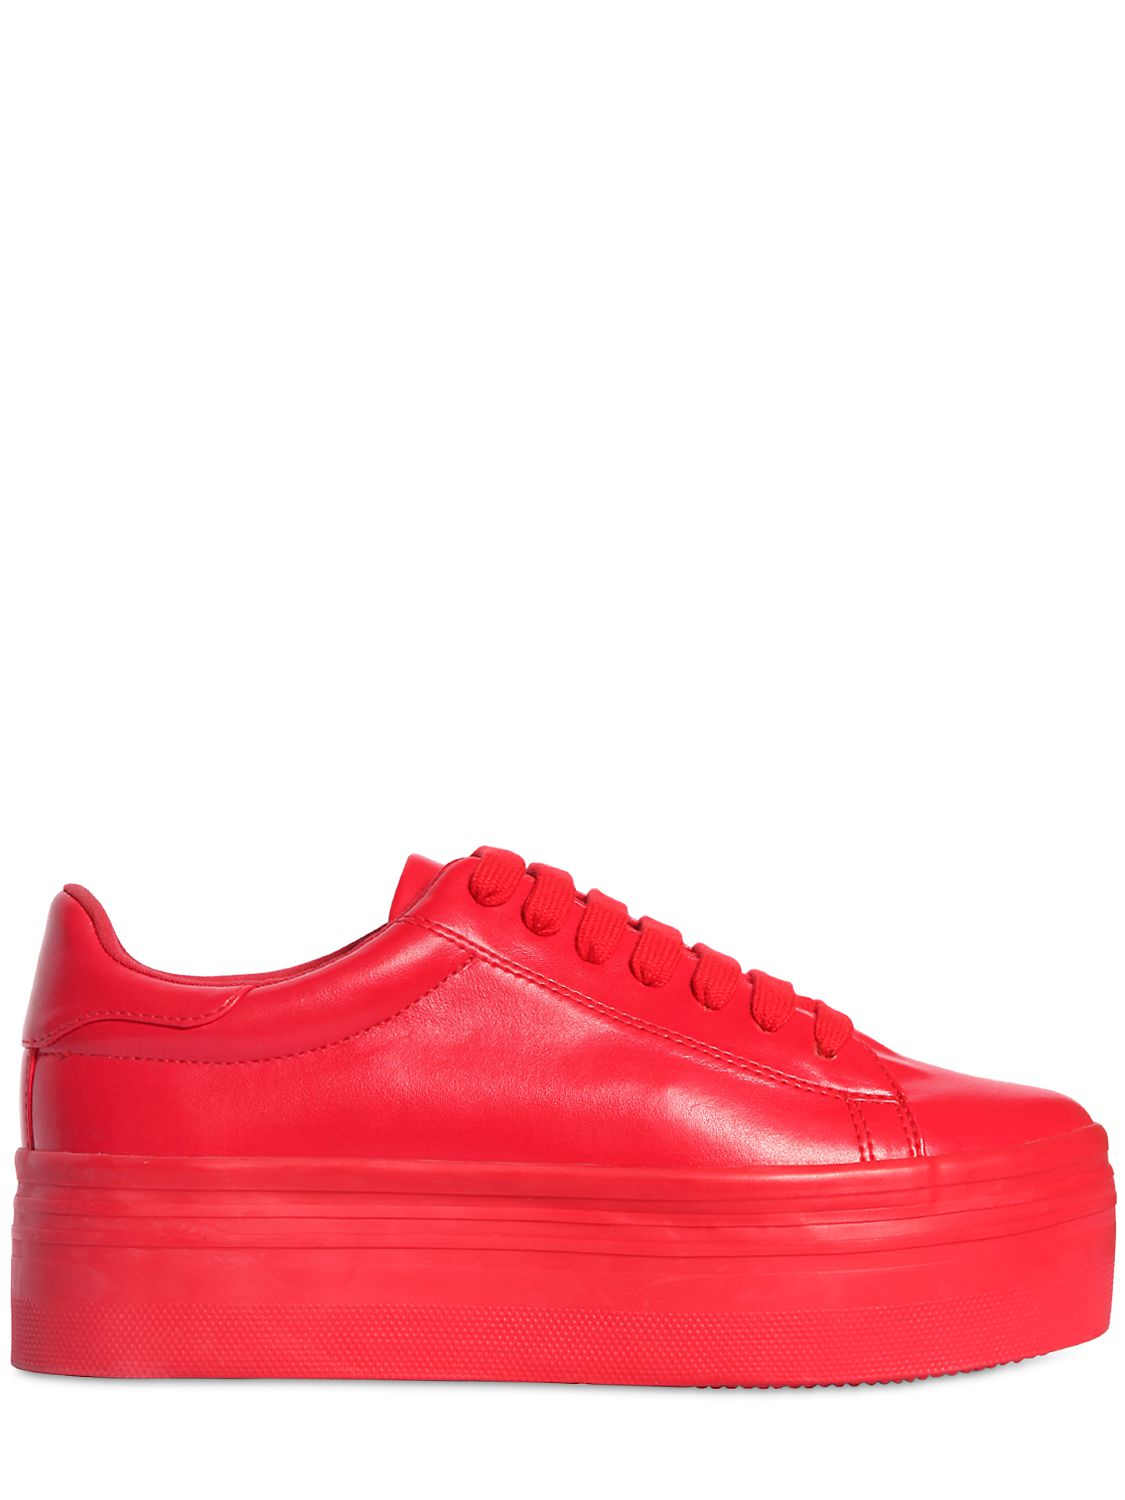 Jeffrey Campbell 60MM LEATHER SNEAKERS 16sEi